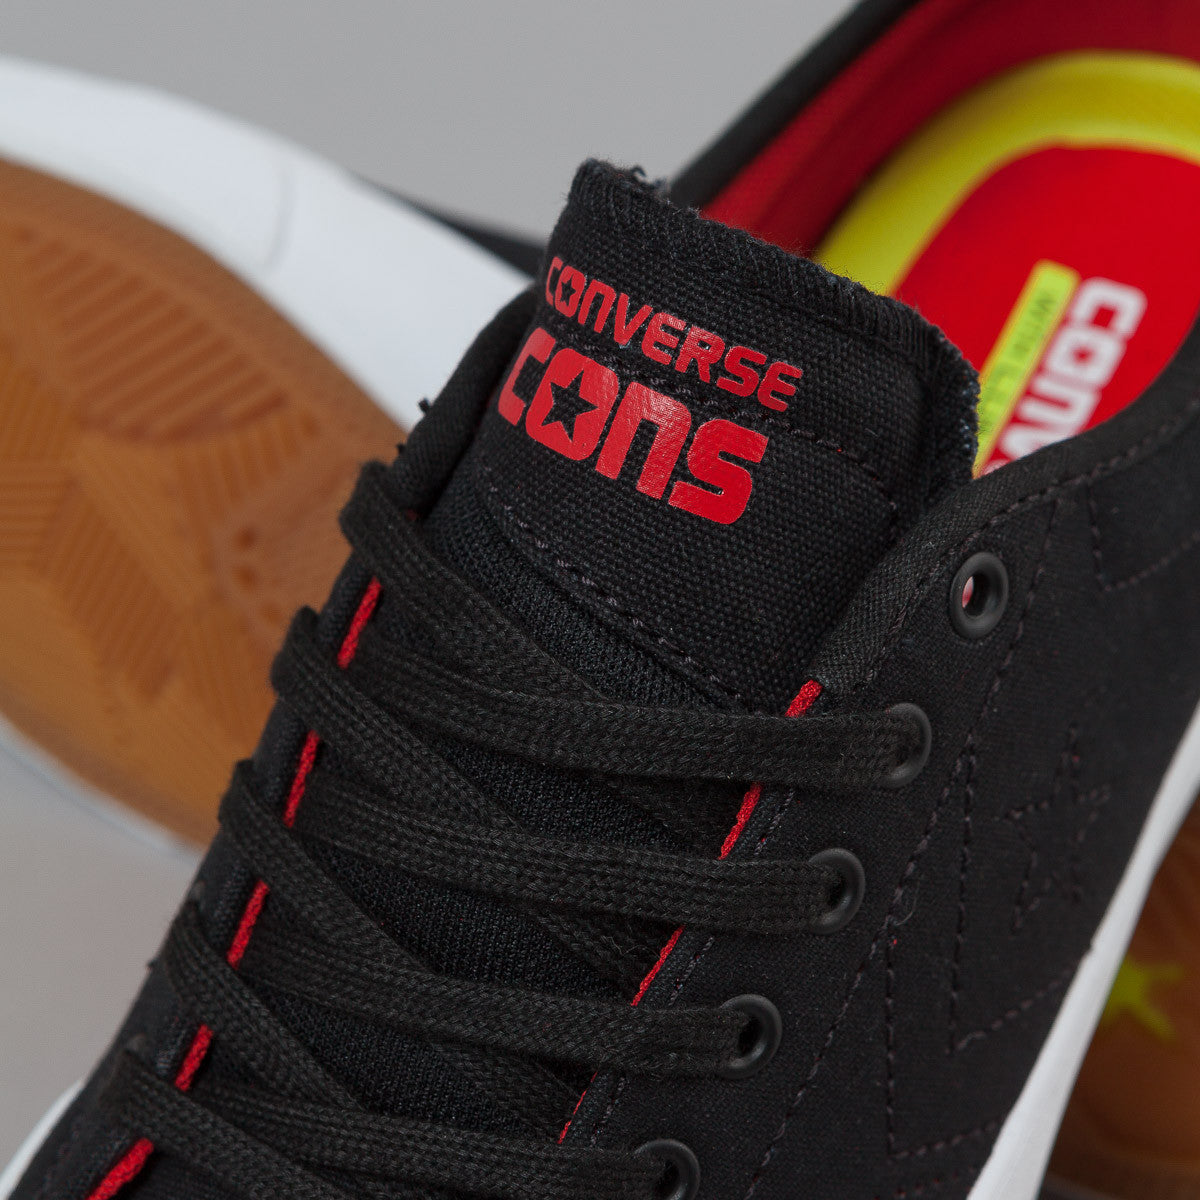 Converse CONS Sumner OX Shoes - Black / Casino Red / White